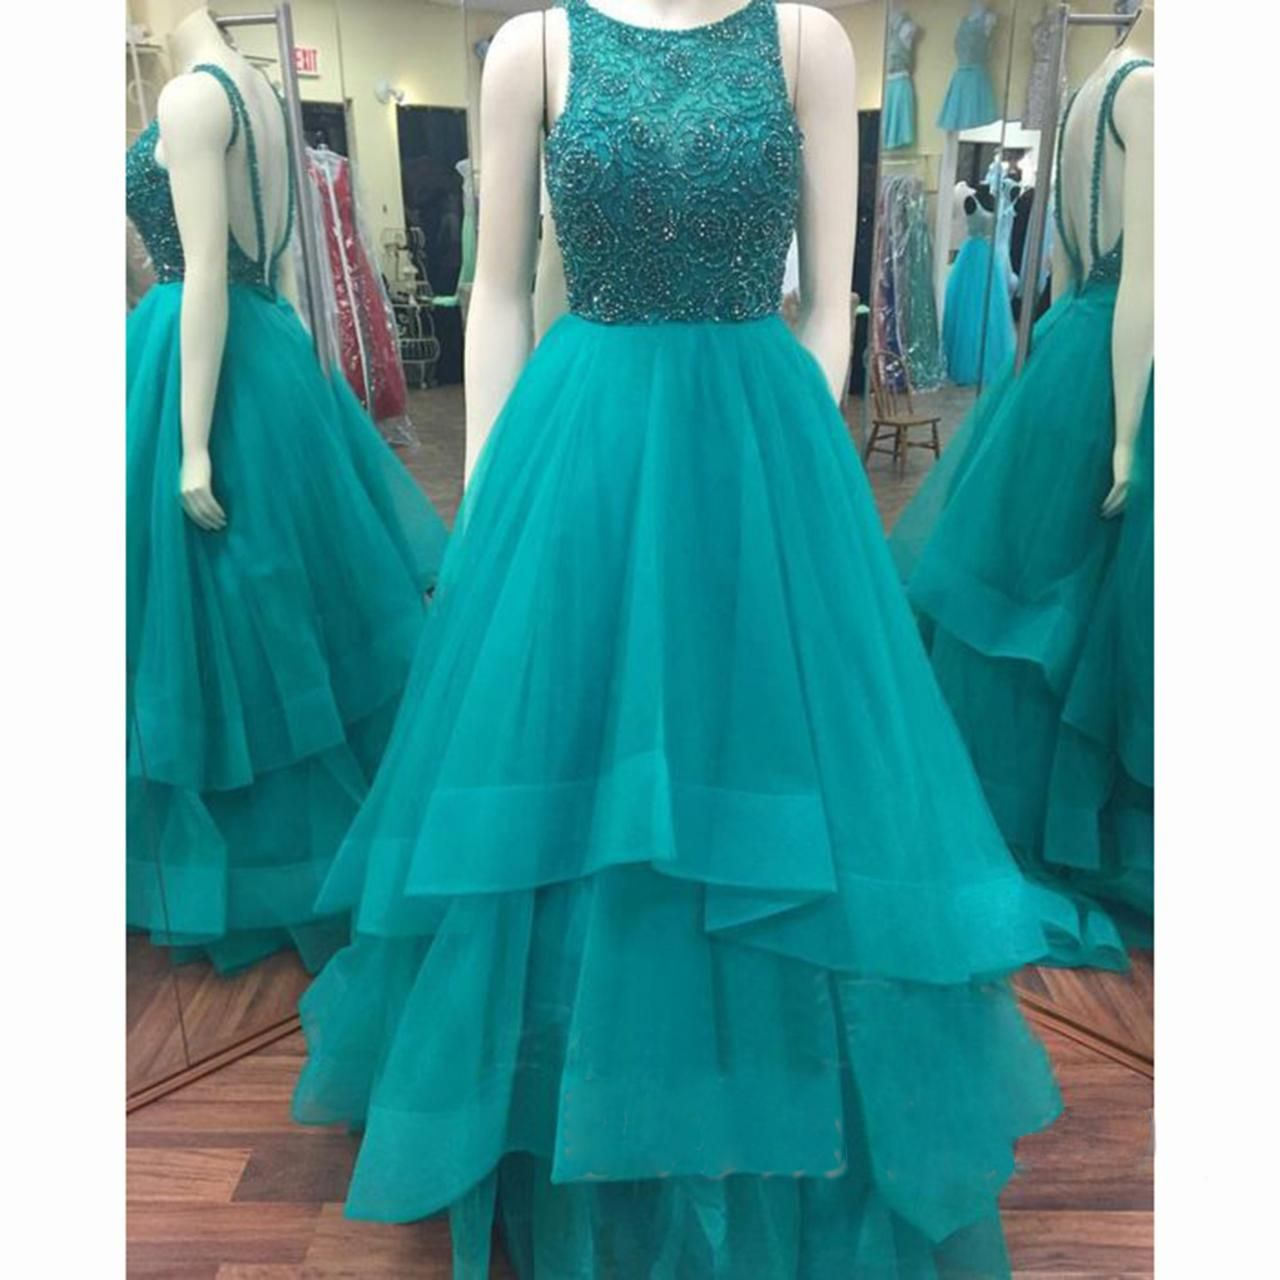 Backless turquoise prom dress backless prom dress sexy prom